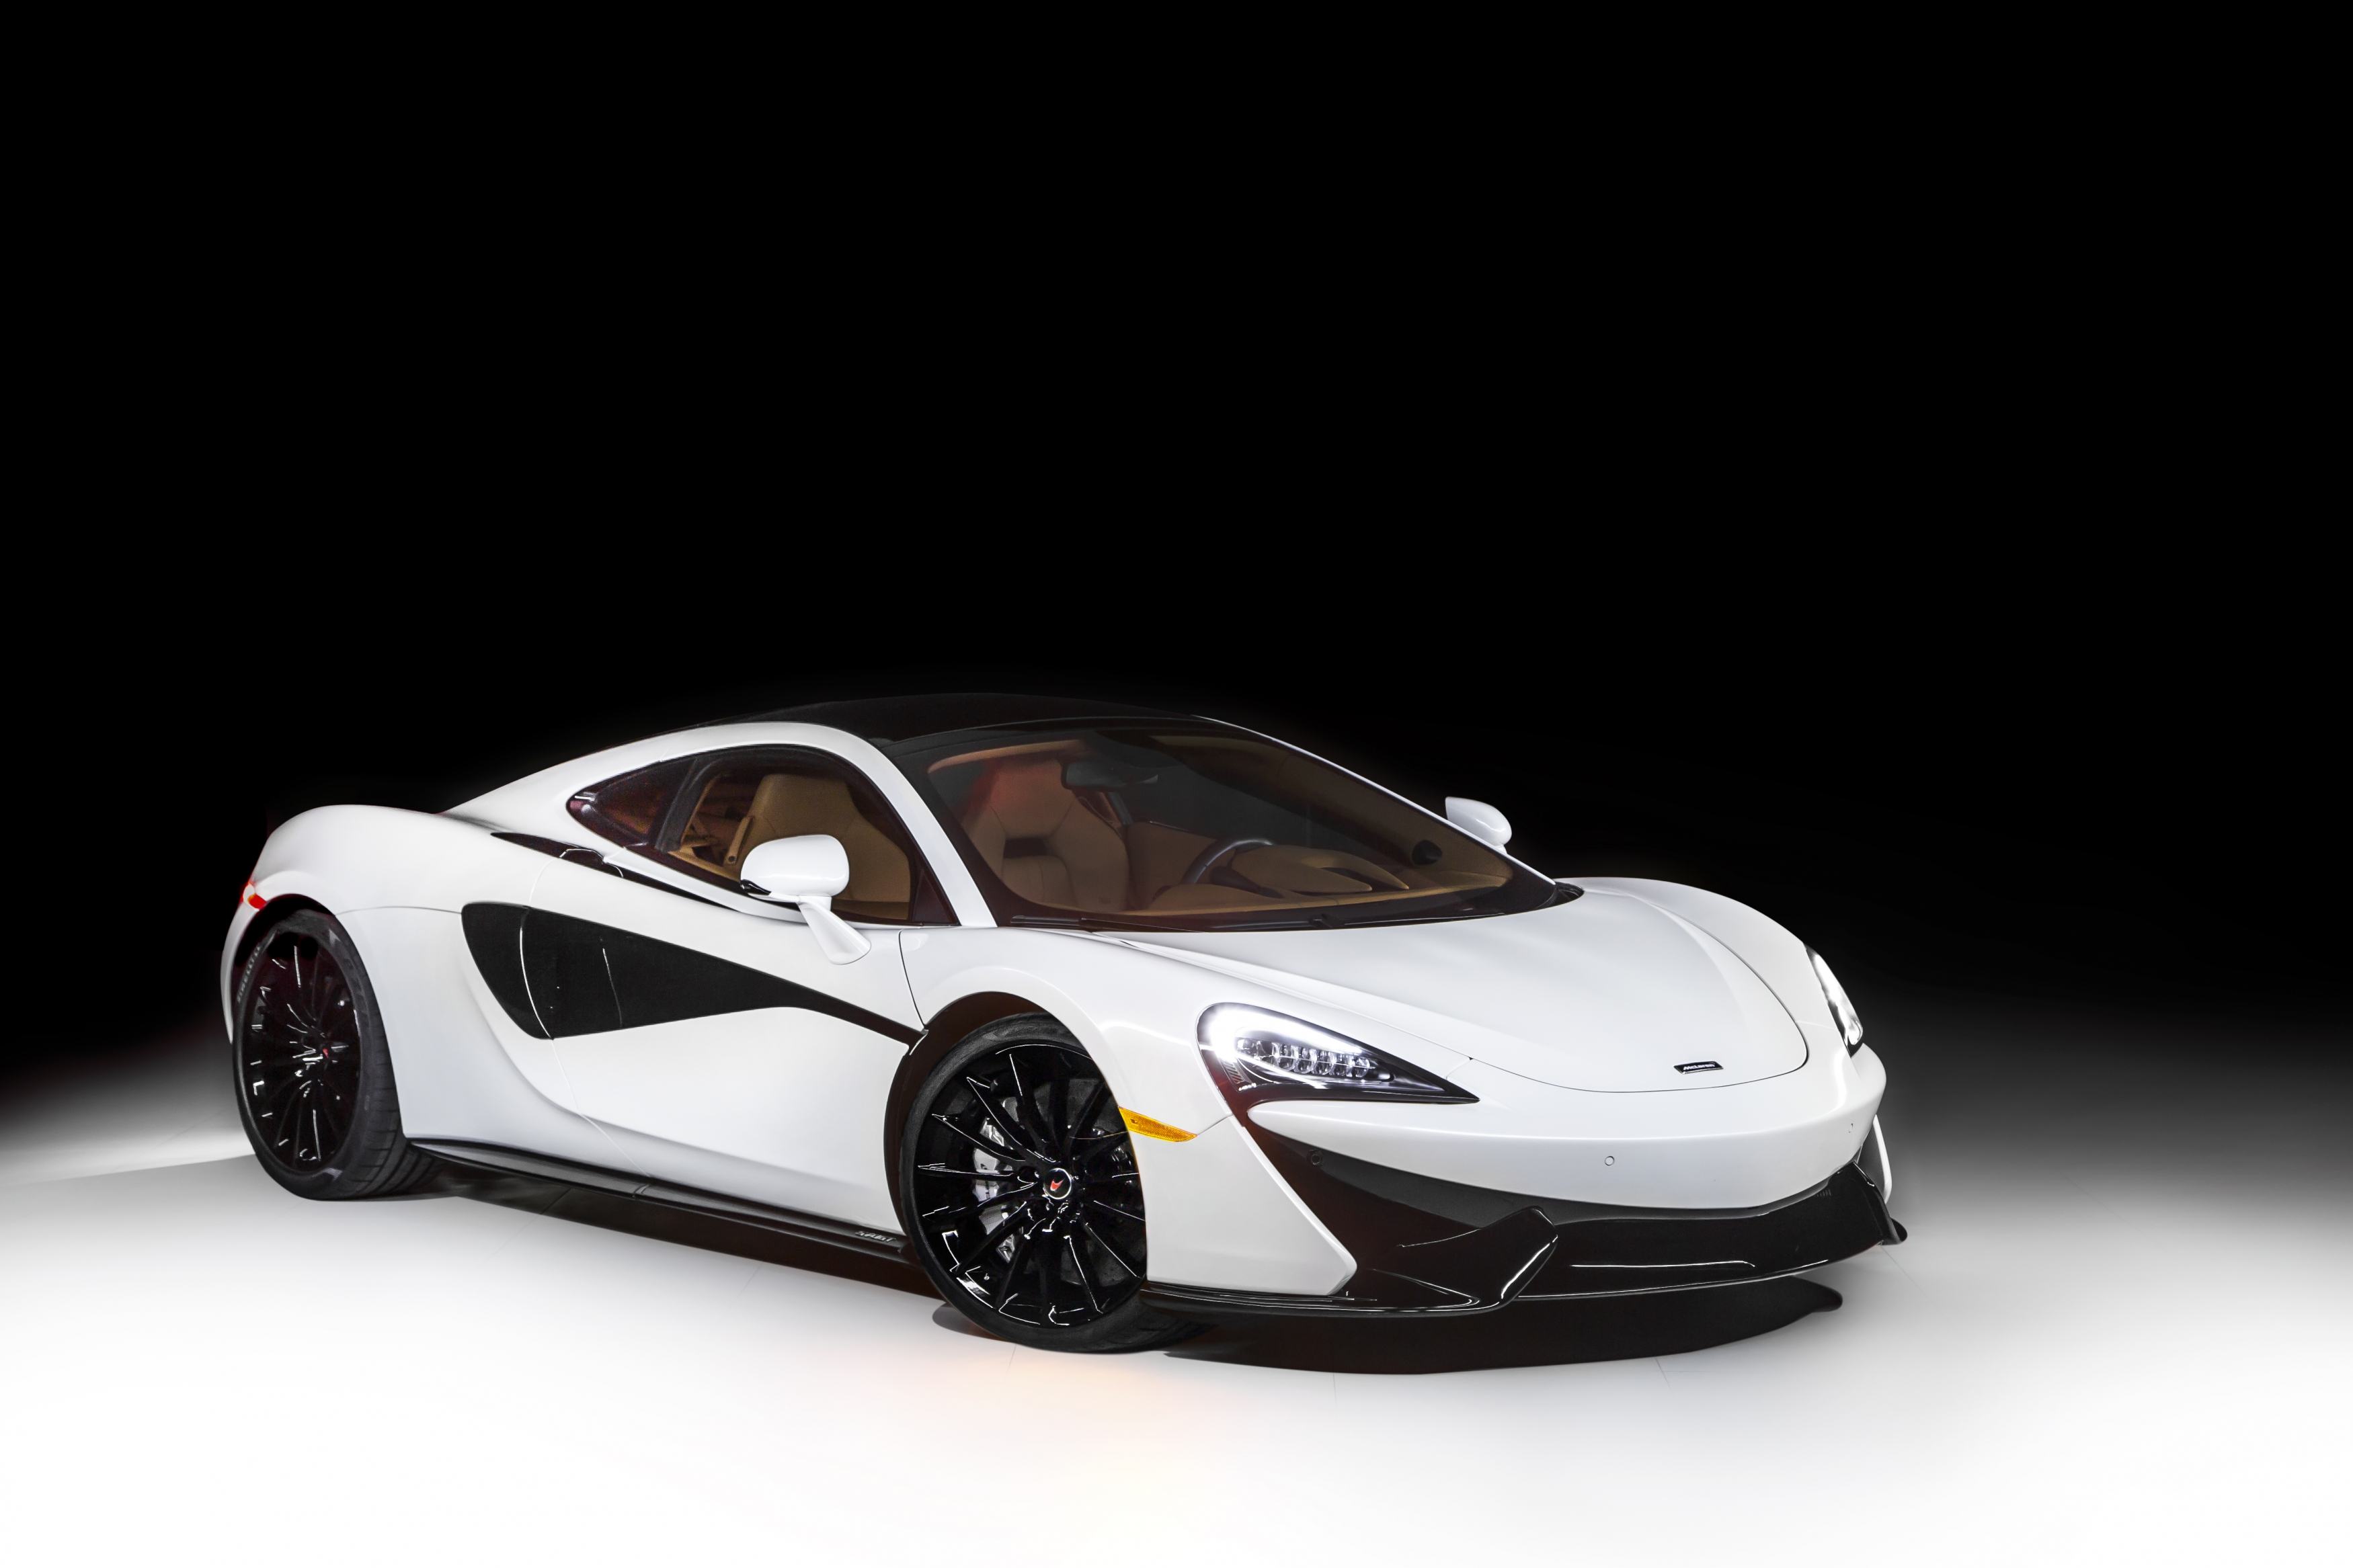 Is Apple About to Purchase McLaren?